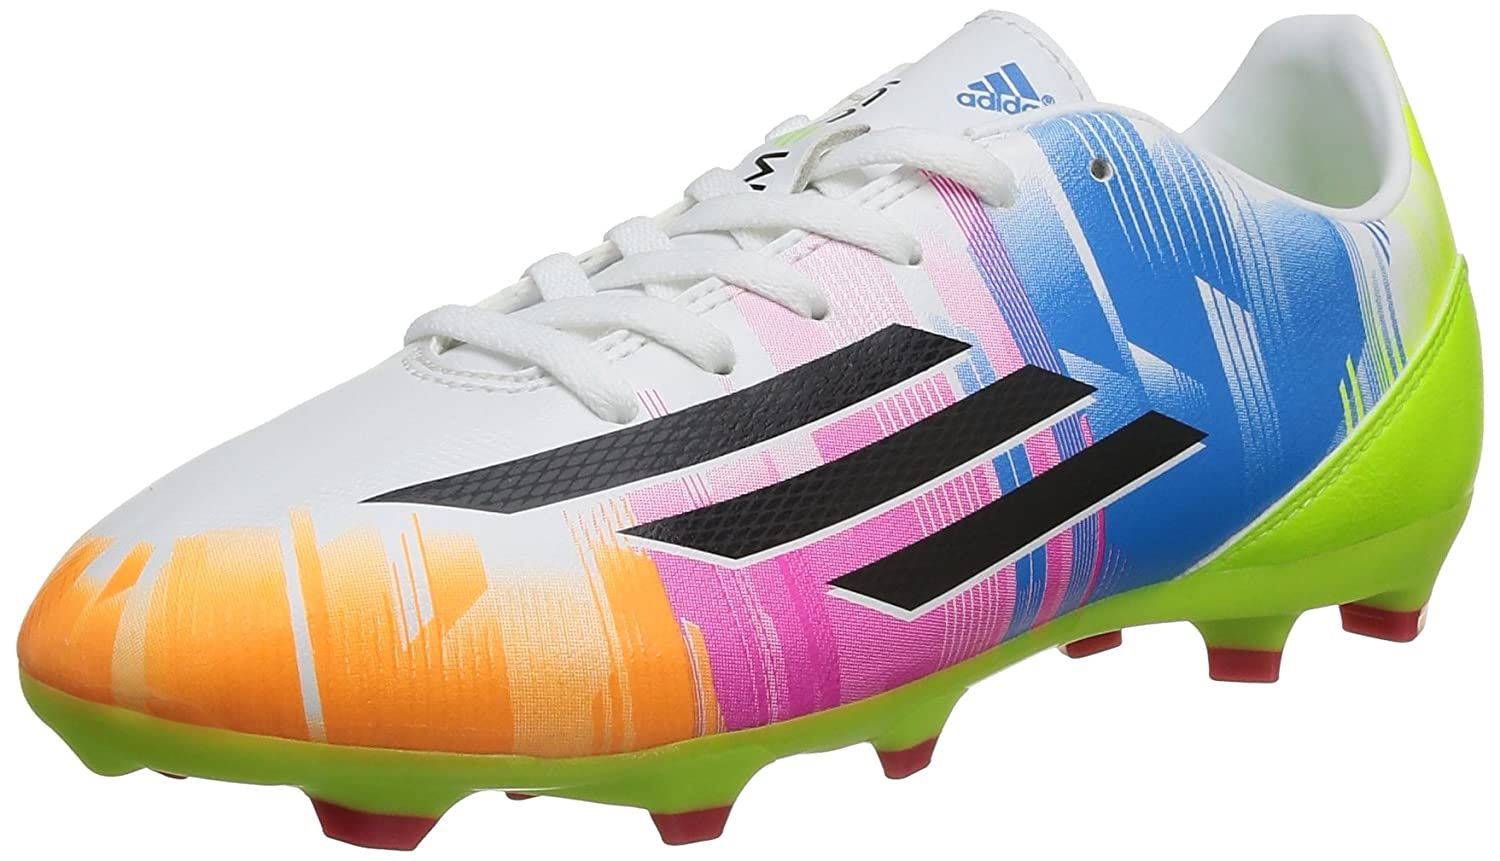 adidas Boys  F10 TRX FG J Messi Football Boots multi-coloured Size  2.5   Amazon.co.uk  Shoes   Bags 6477ee8ef95